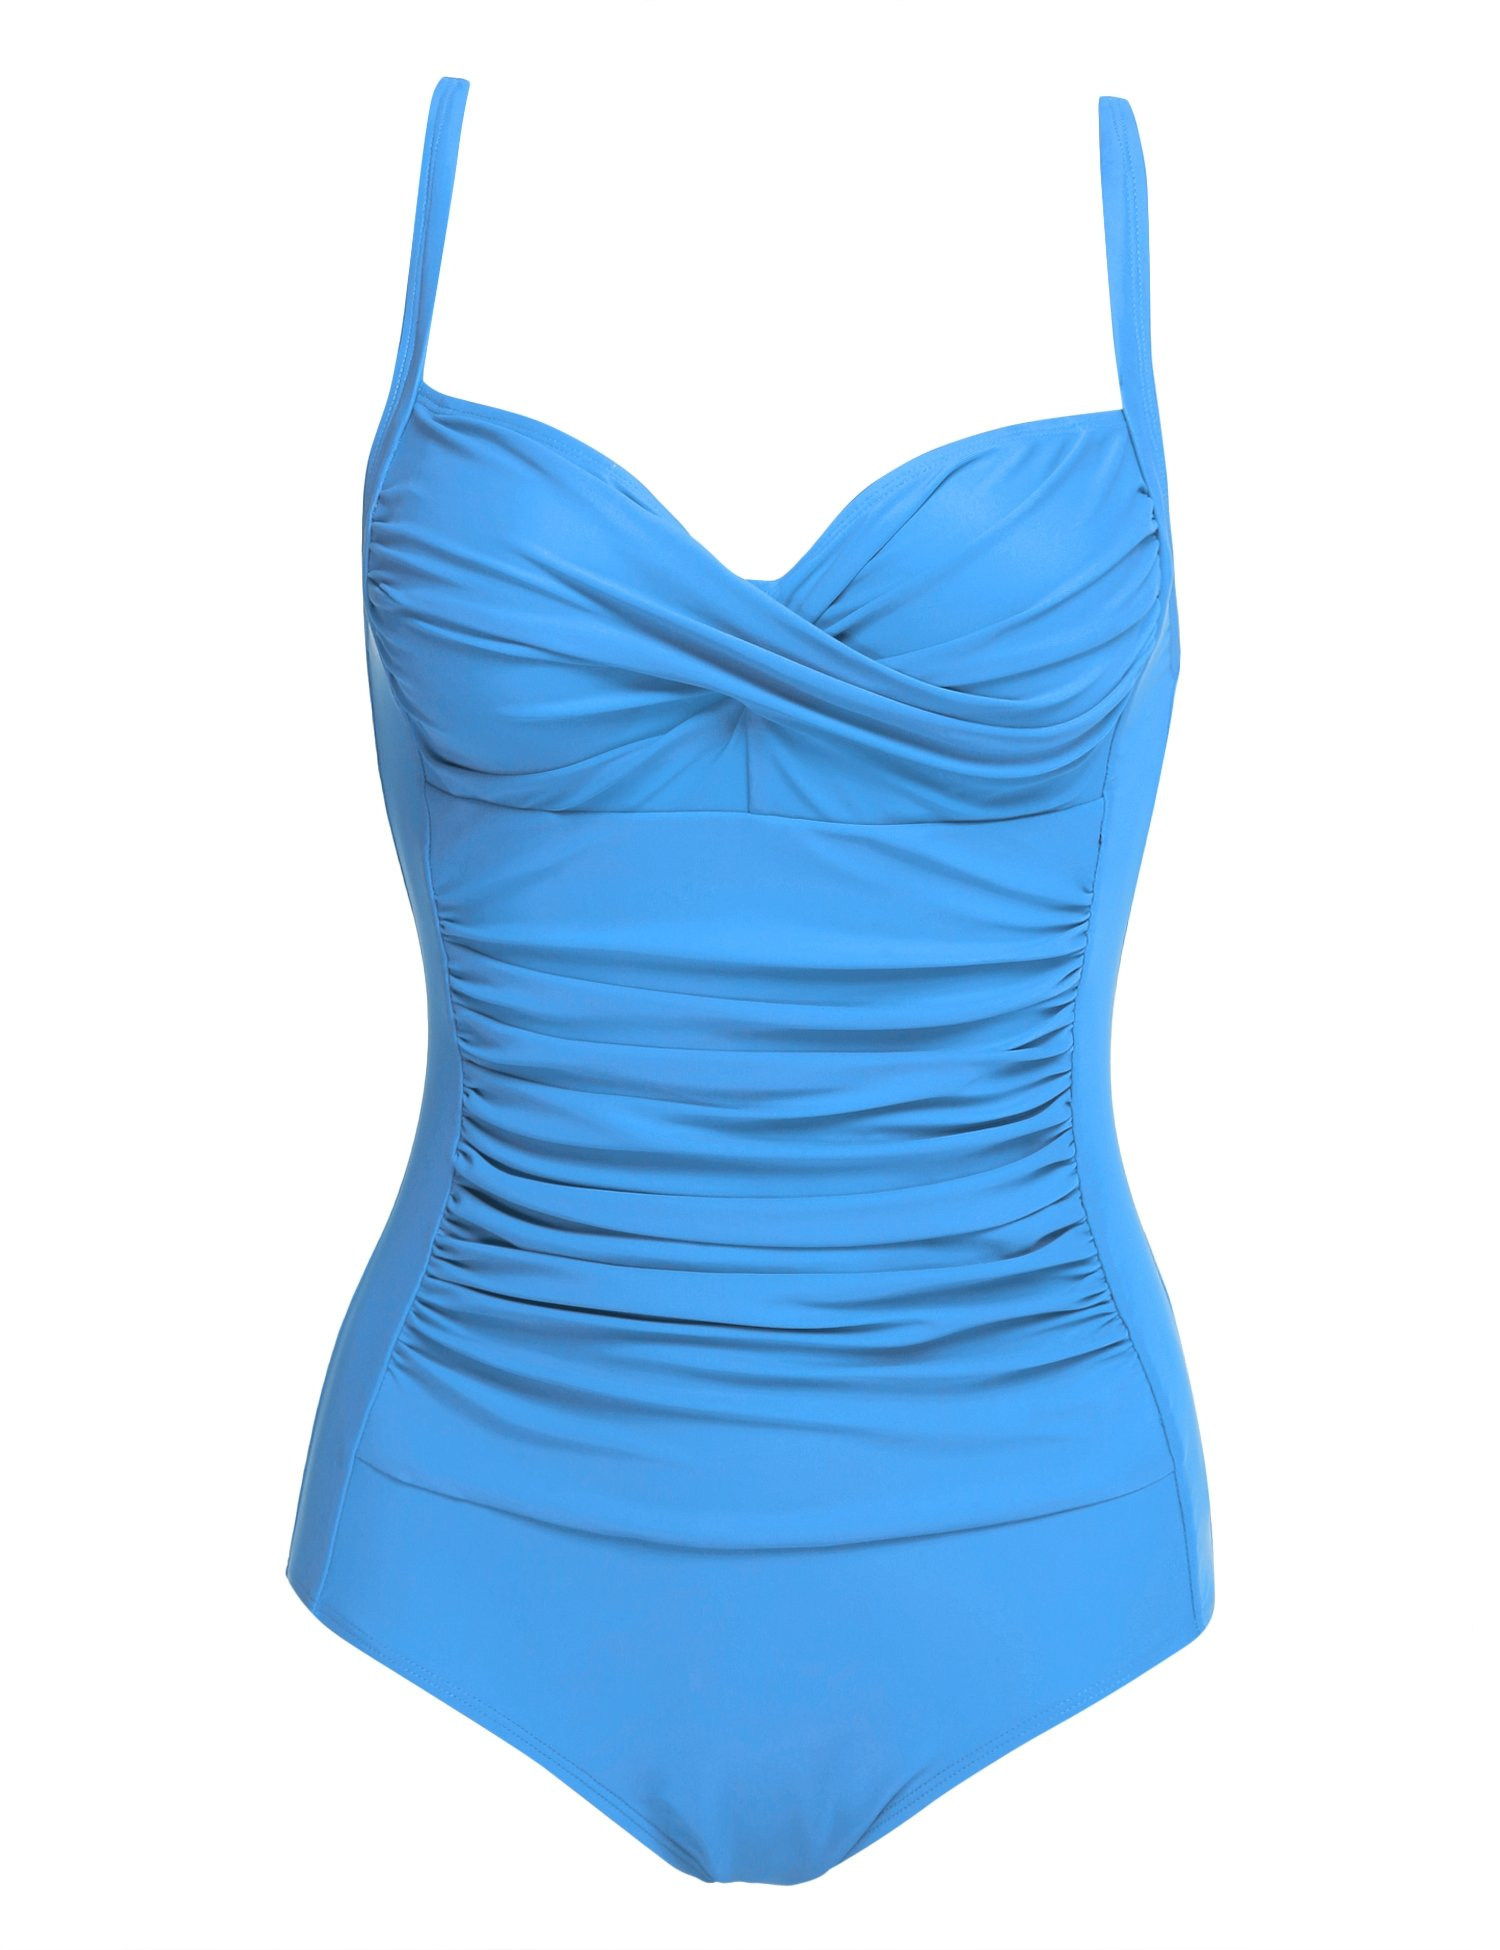 Ekouaer 50s Retro Vintage Style One Piece Vintage Monokini Swimsuit, Sky Blue, XL